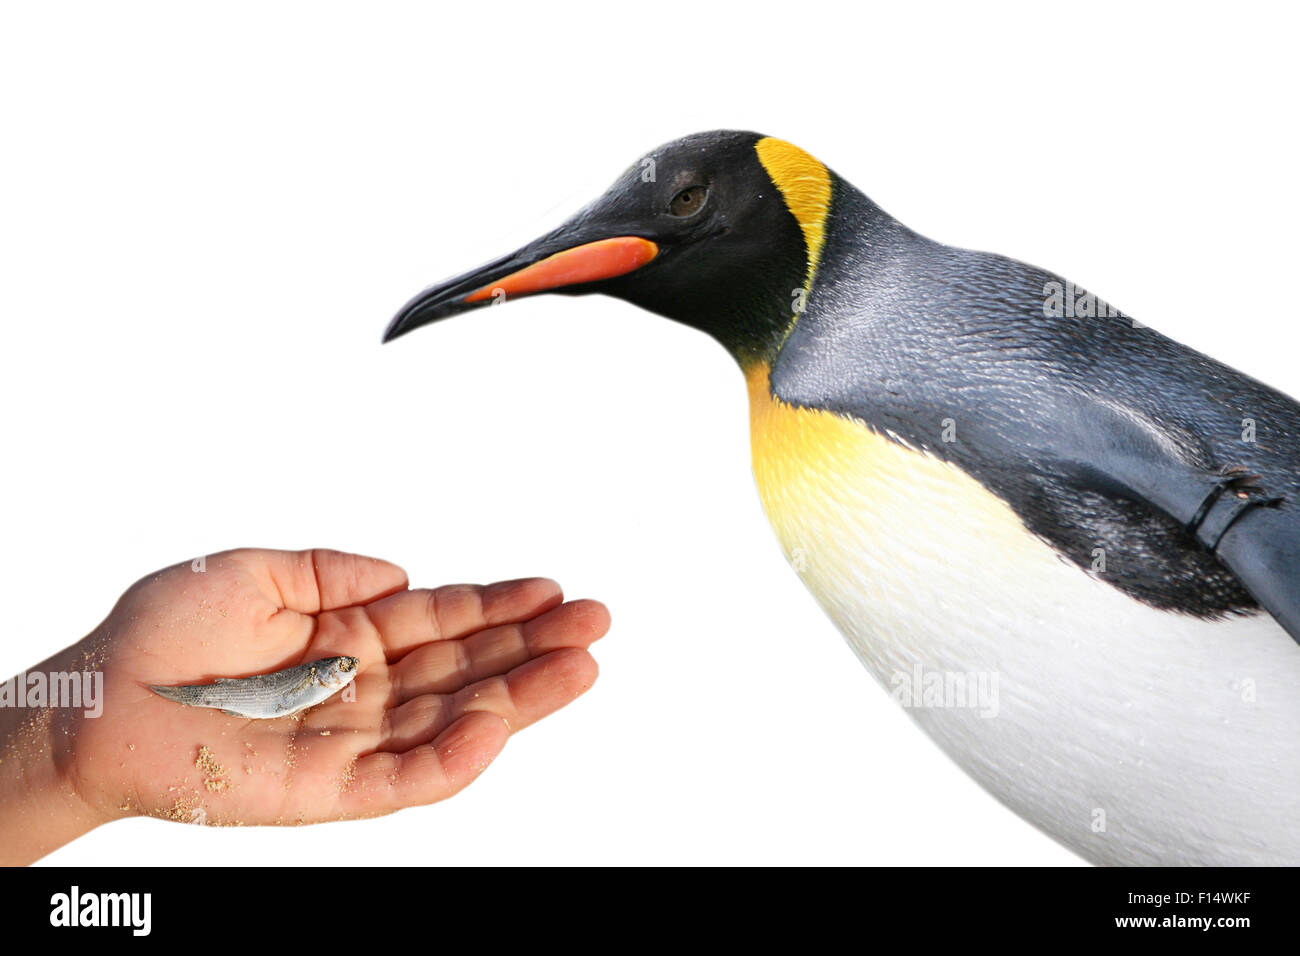 The Penguin is fed - Stock Image